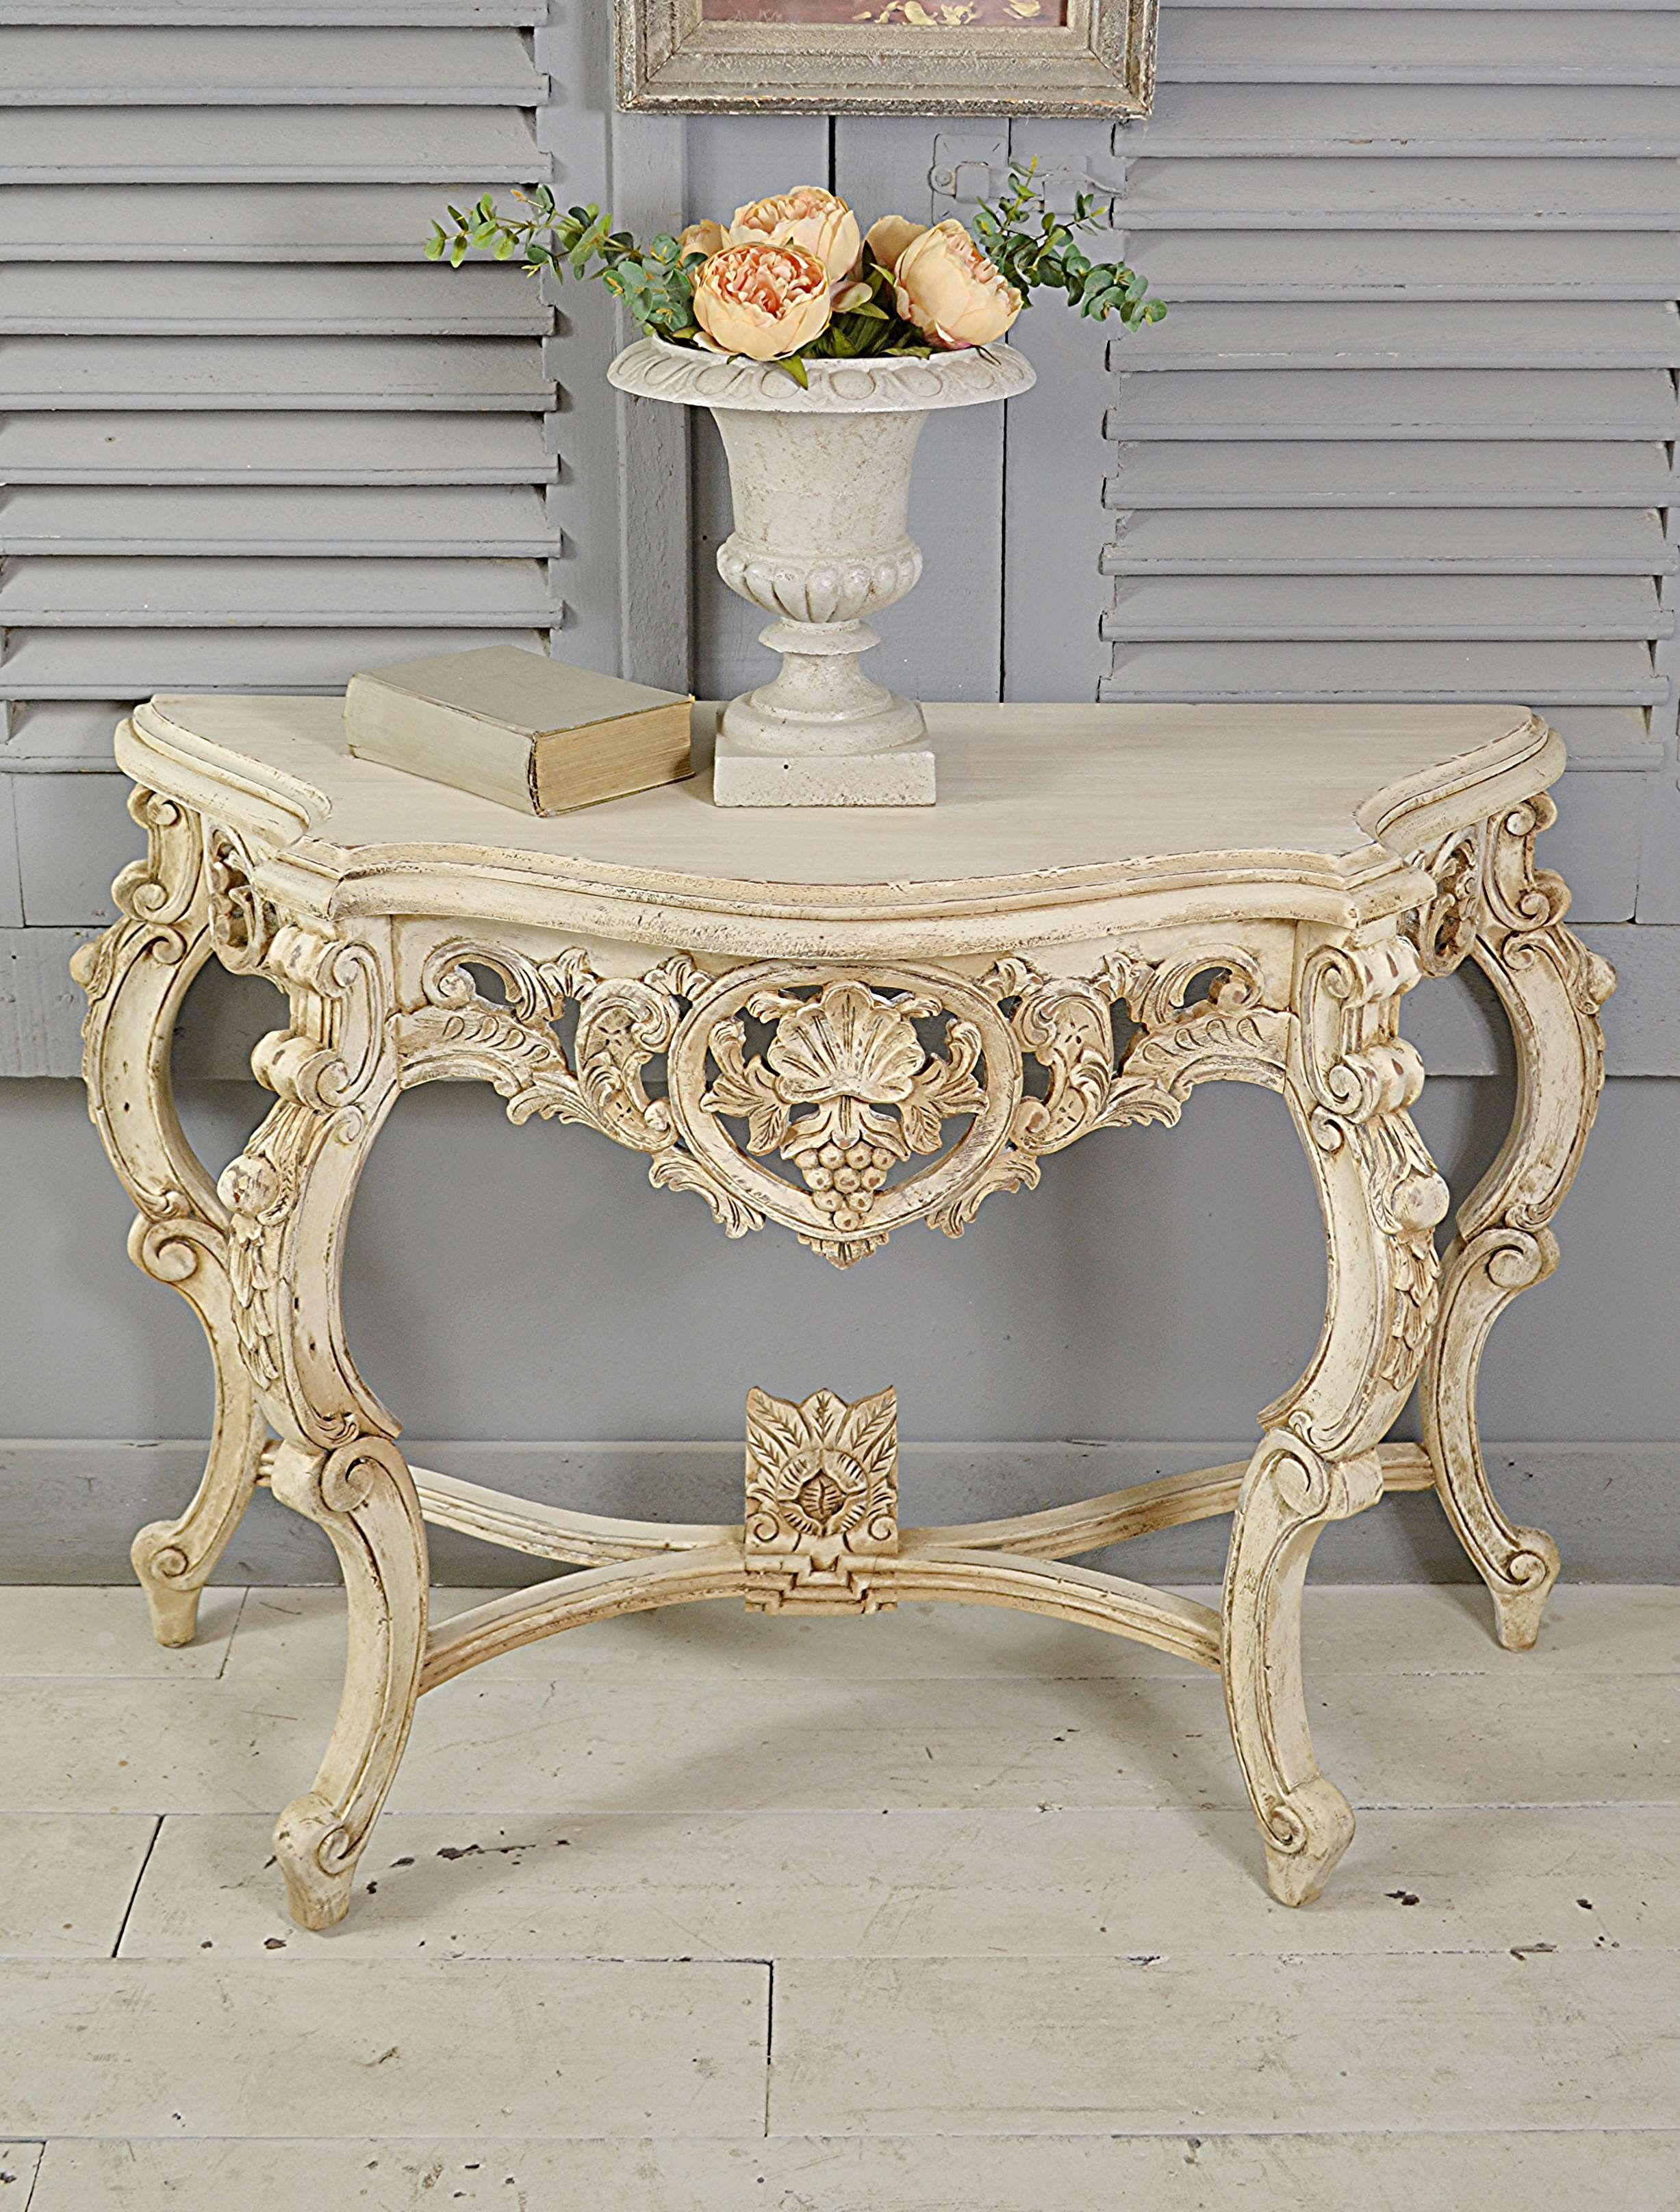 Letstrove Stunning Ornate French Console Table In Original